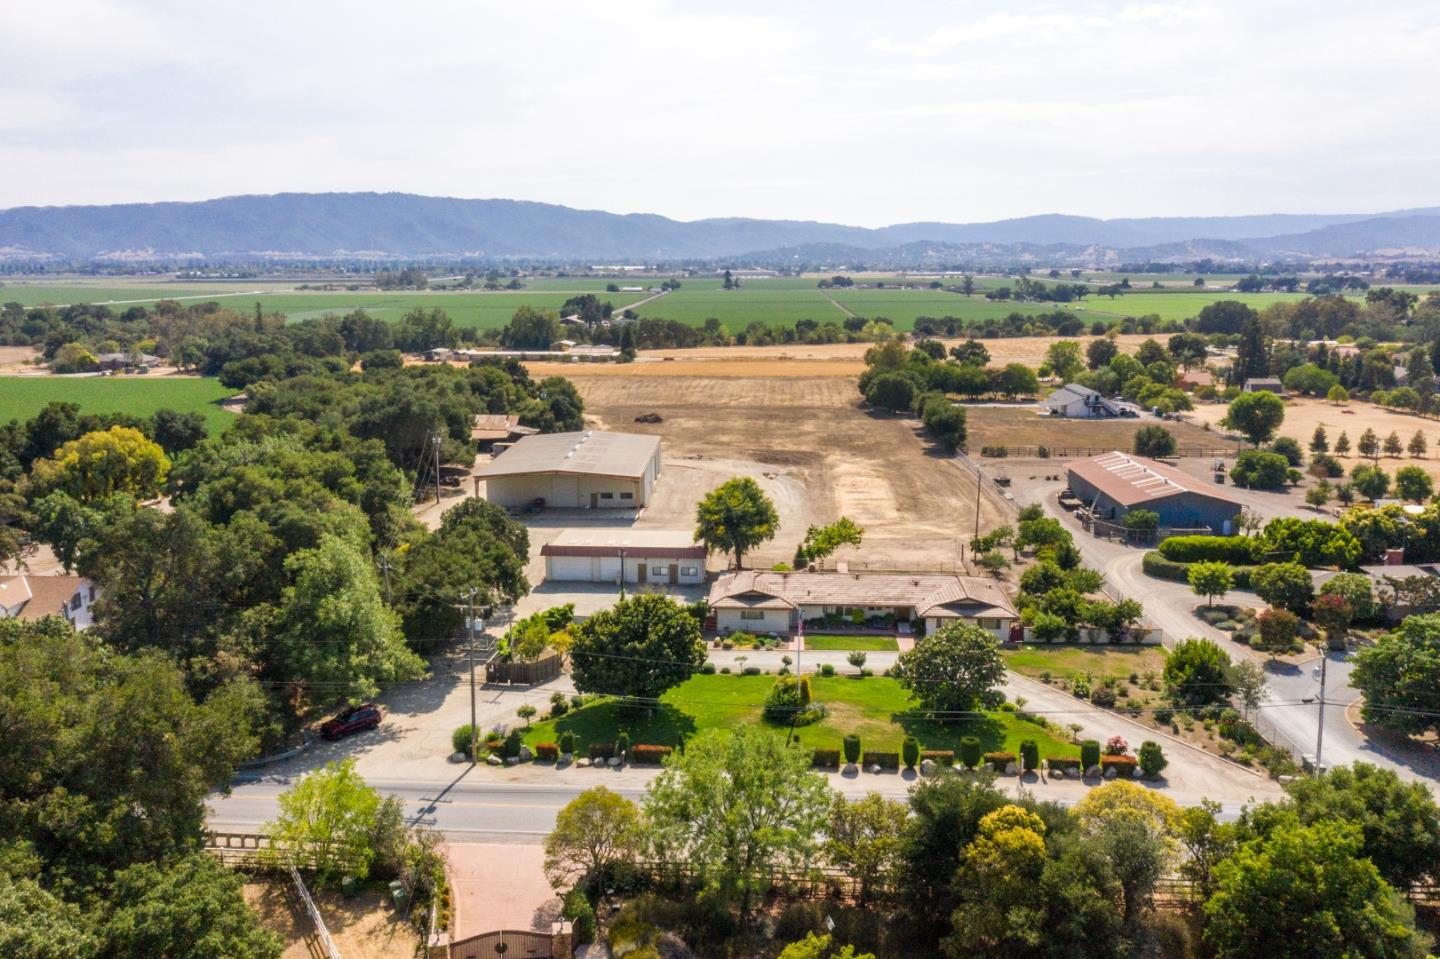 2500 SqFt House In Gilroy